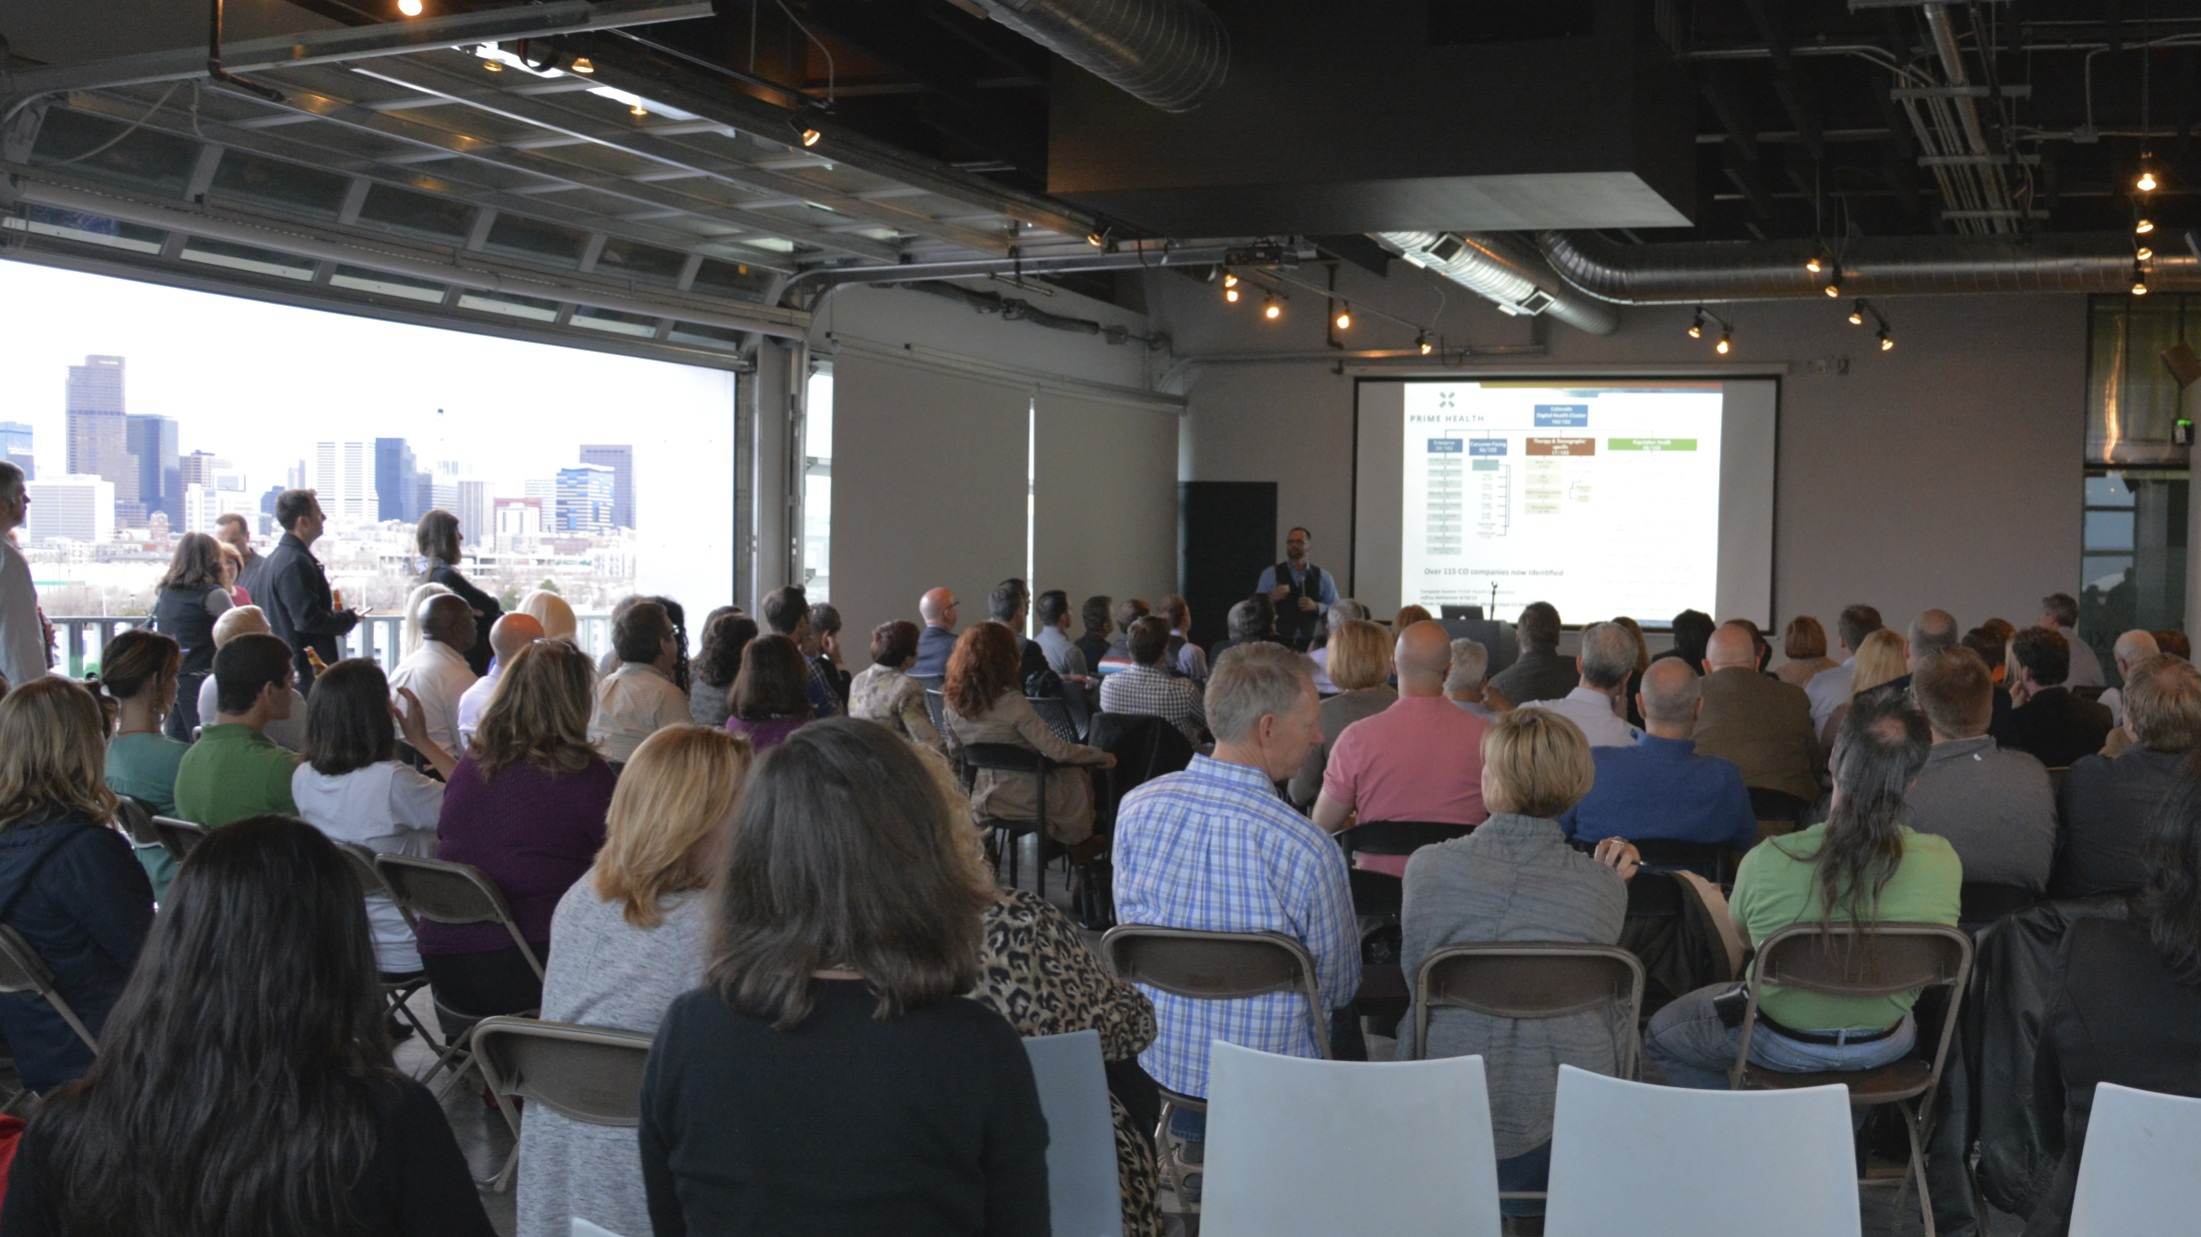 With the Denver skyline in the background, Mike Biselli pushes the digital health vision forward at the March 2015Prime Health Meetup at Taxi.